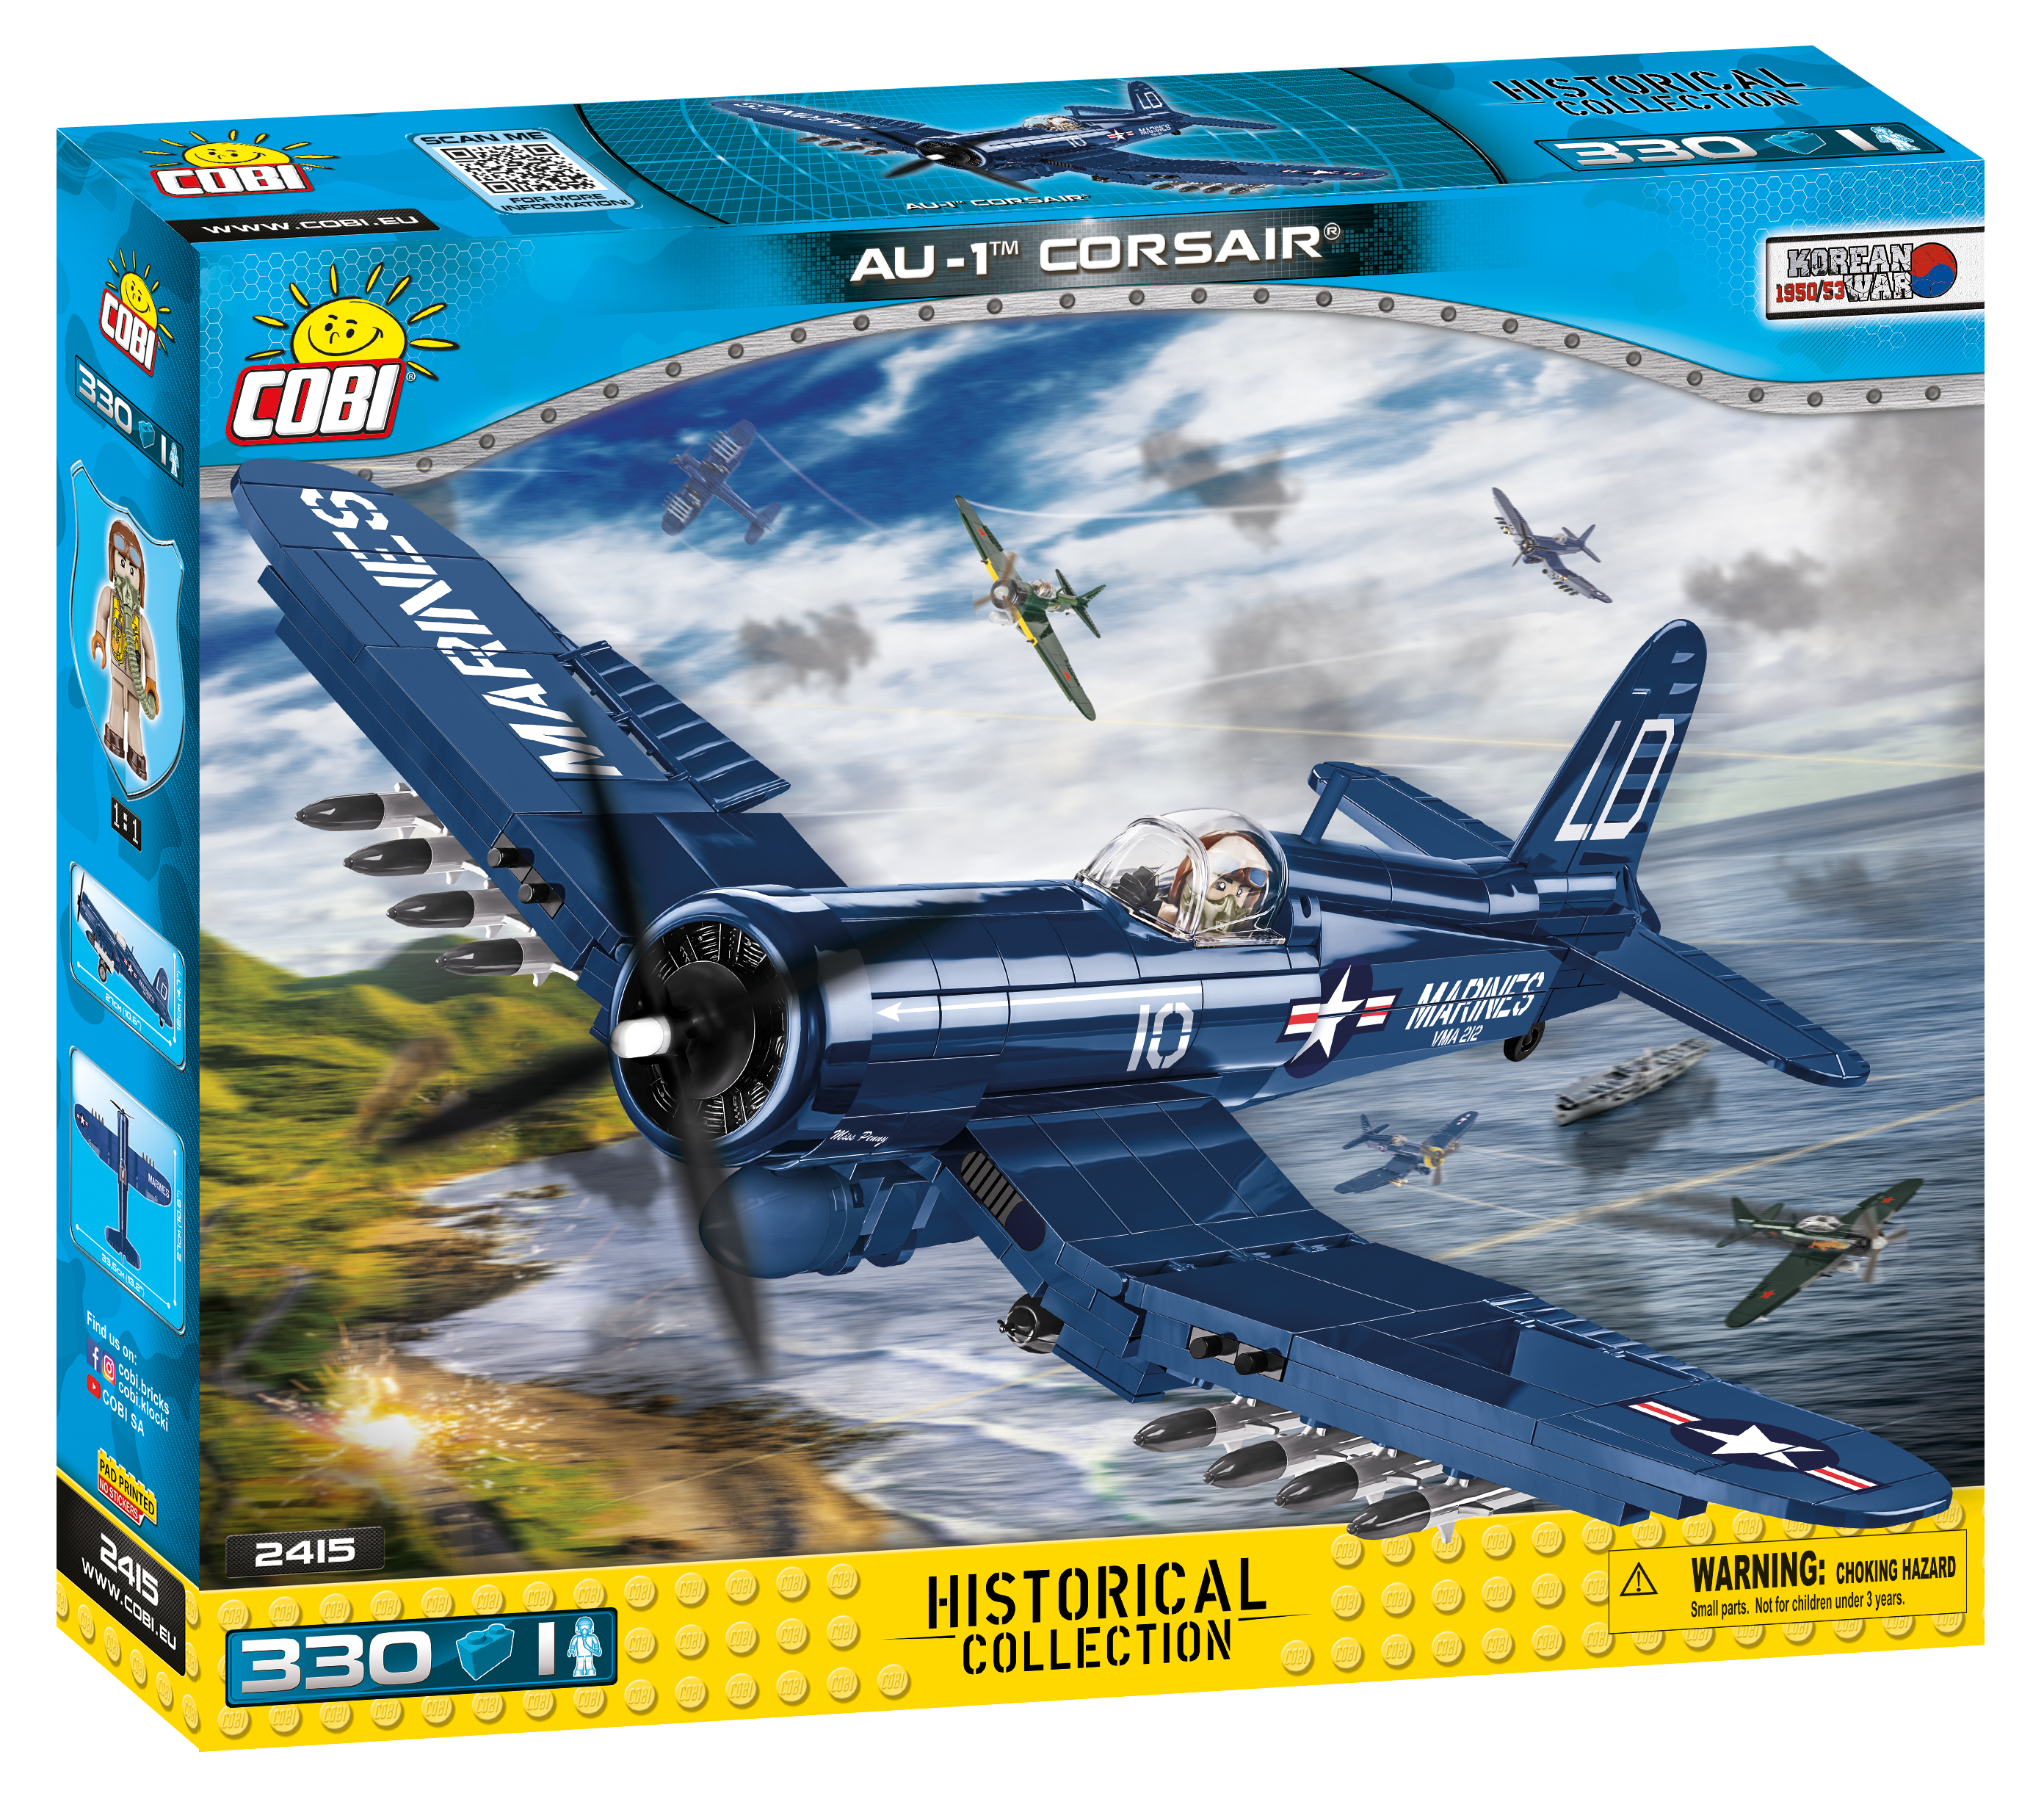 Cobi 2415 Vought AU-1 Corsair - Pad Printed -